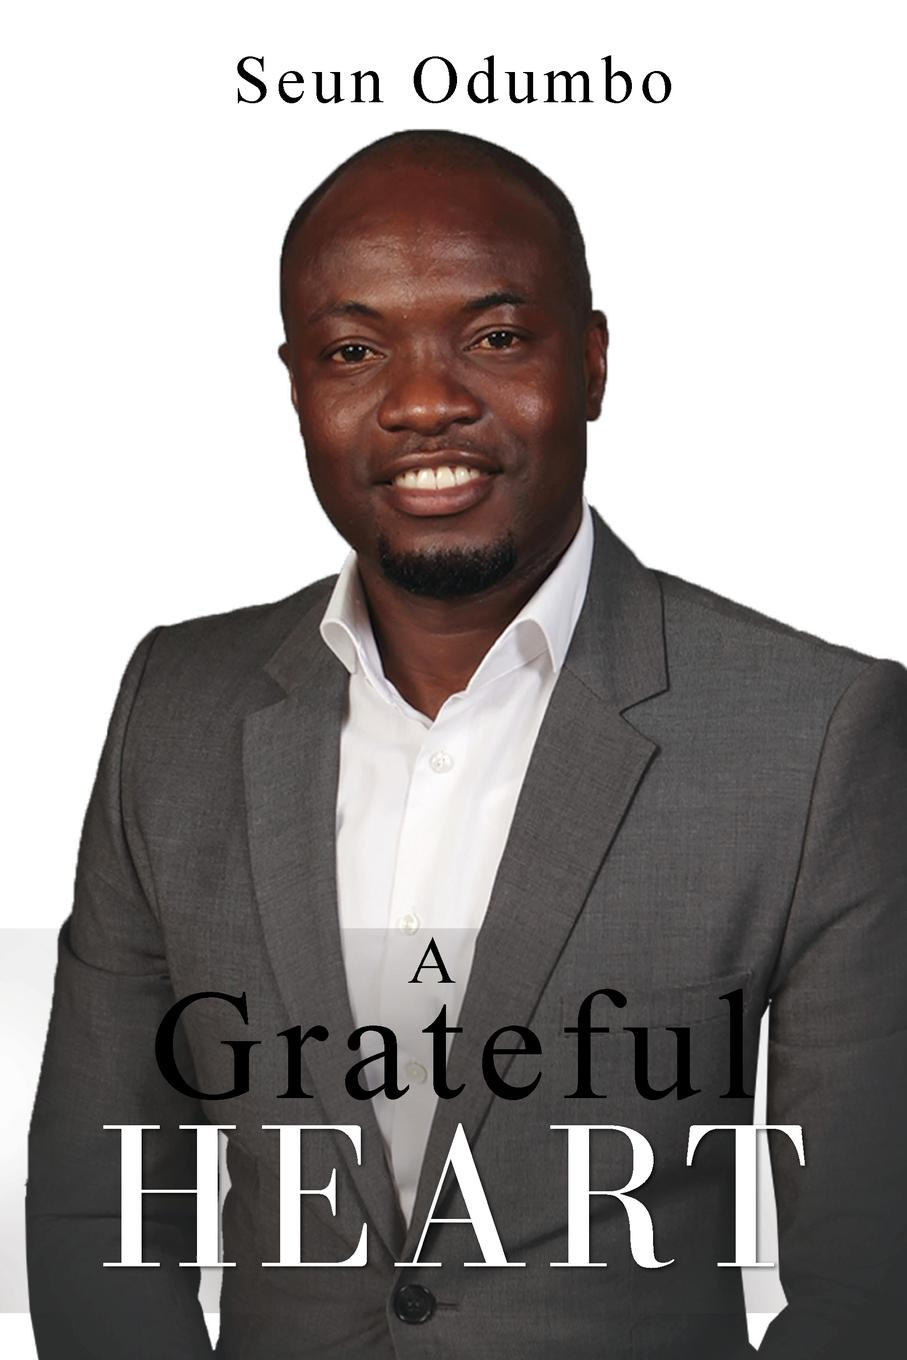 Seun Odumbo A Grateful Heart seun odumbo a grateful heart